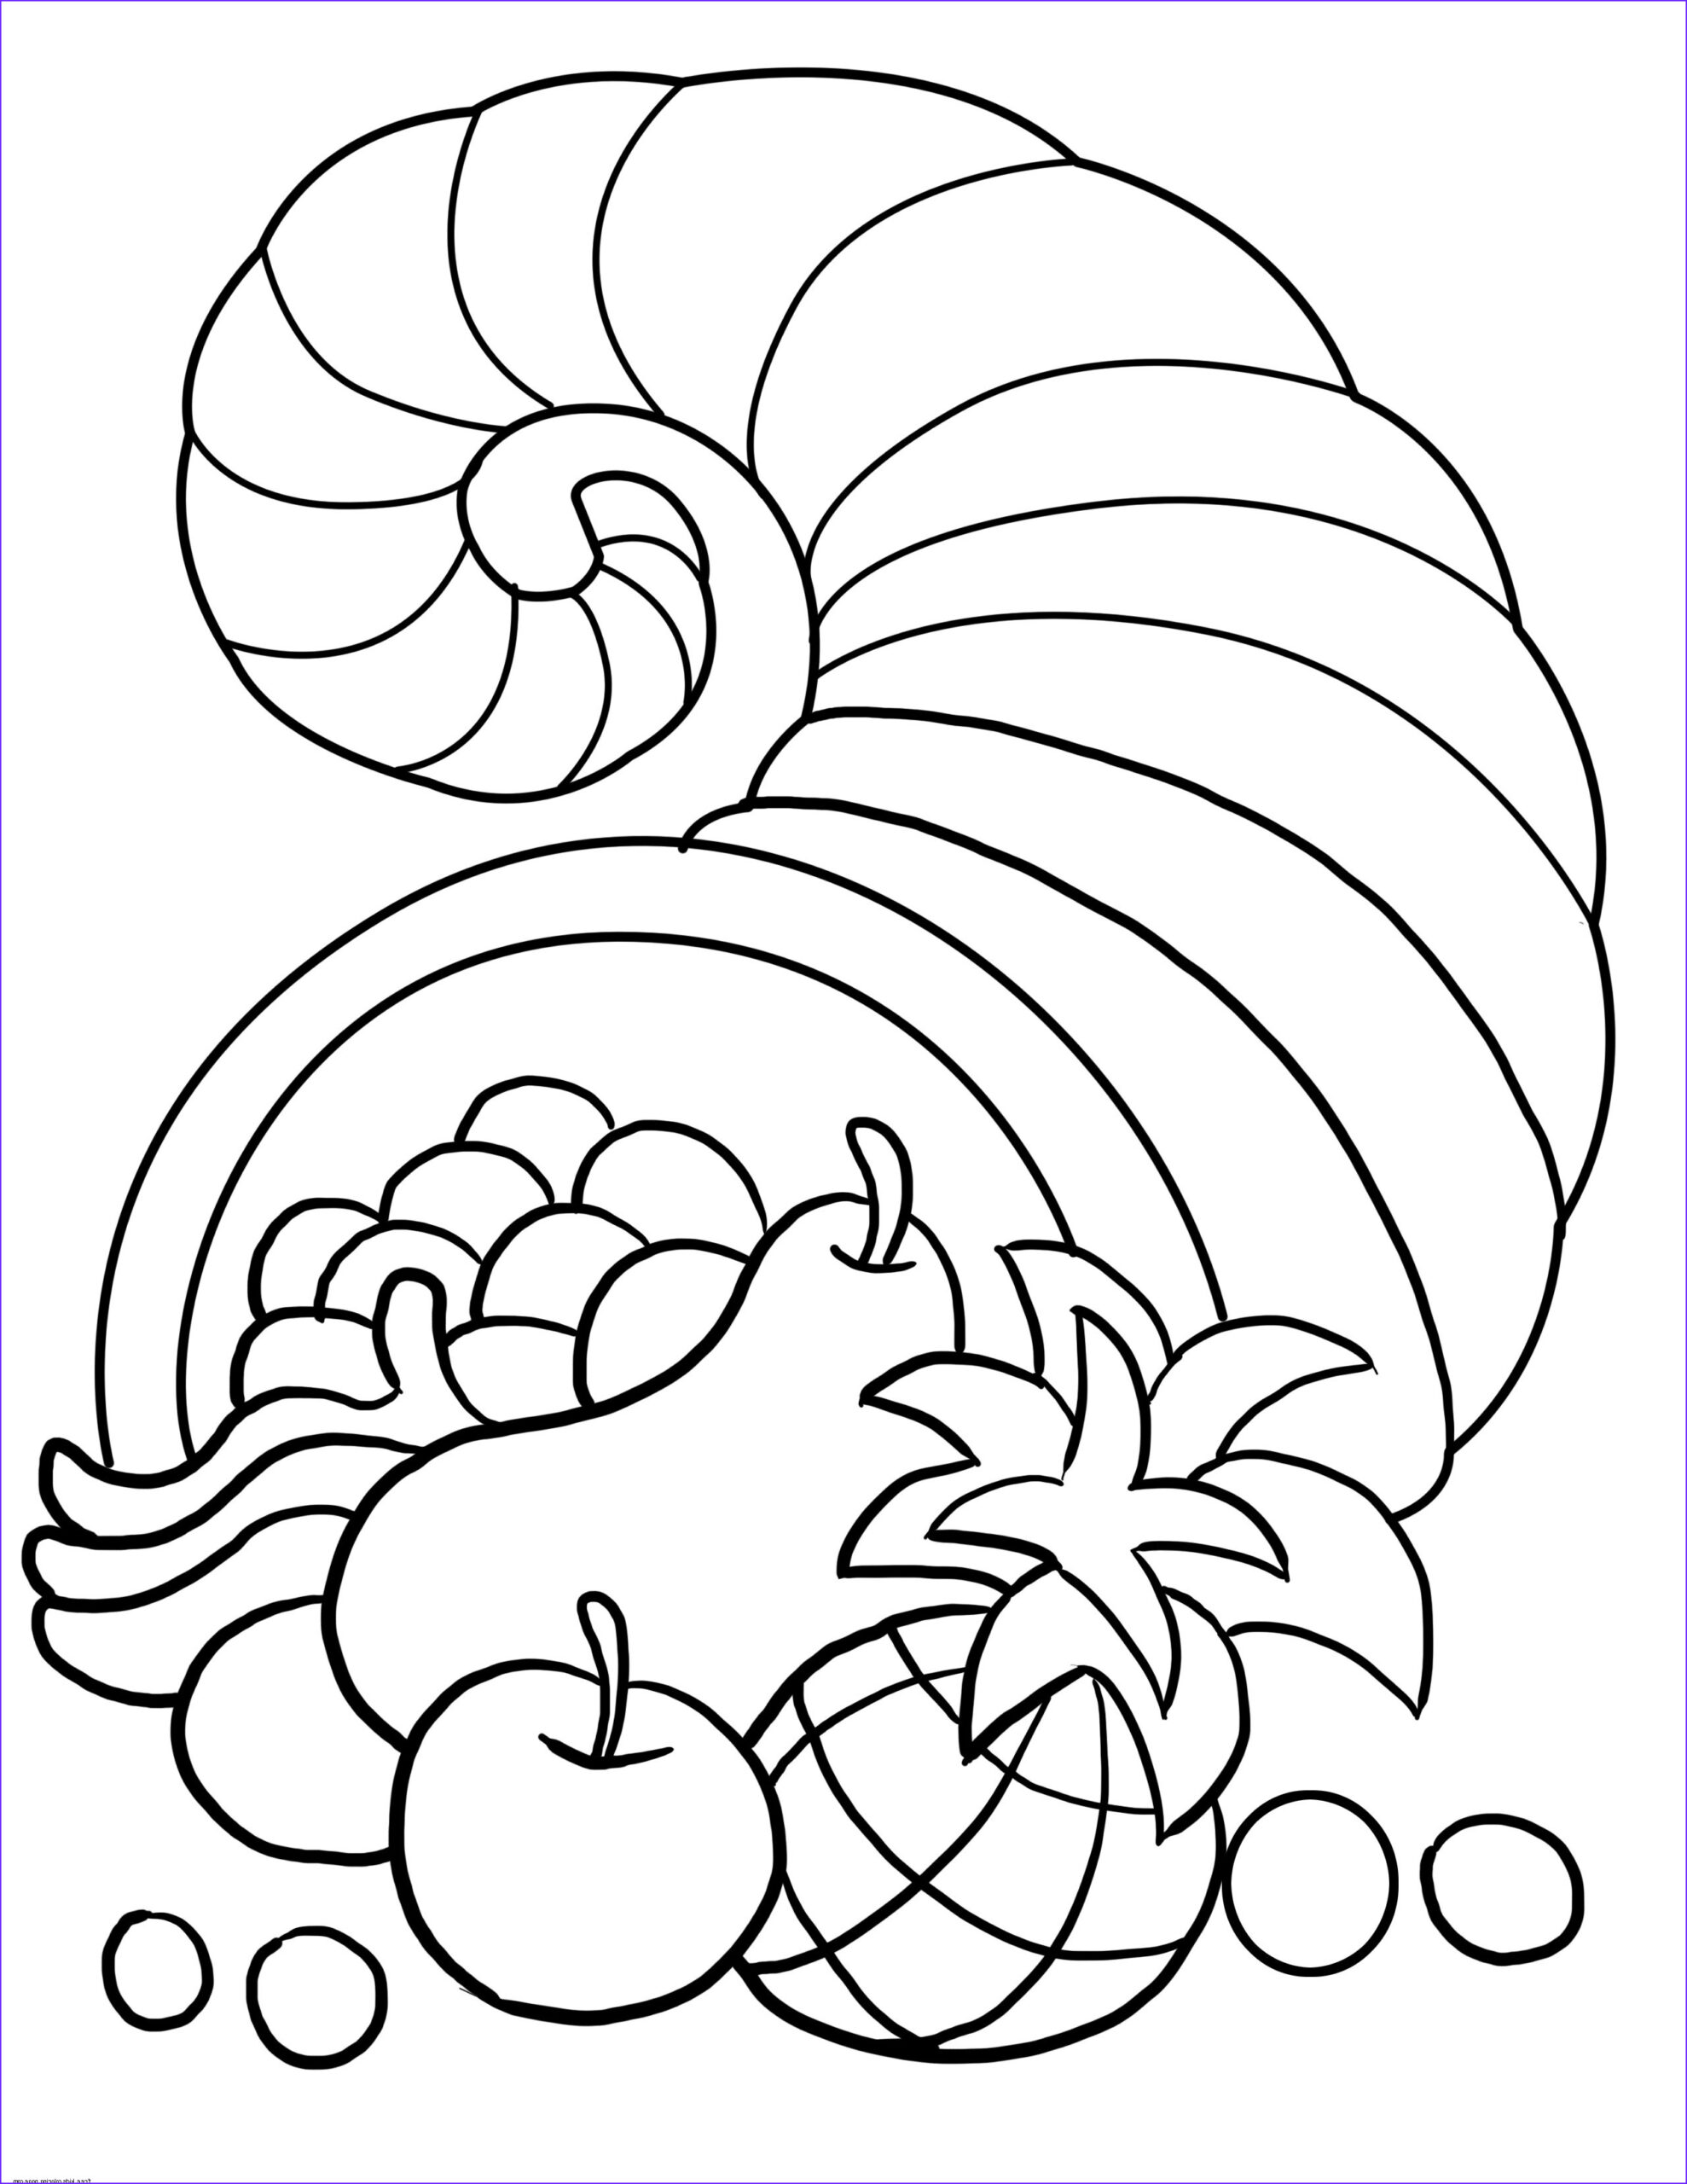 Free Printable Coloring Pages for toddlers Elegant Collection Thanksgiving Cornucopia Coloring Sheet for Kidsfree